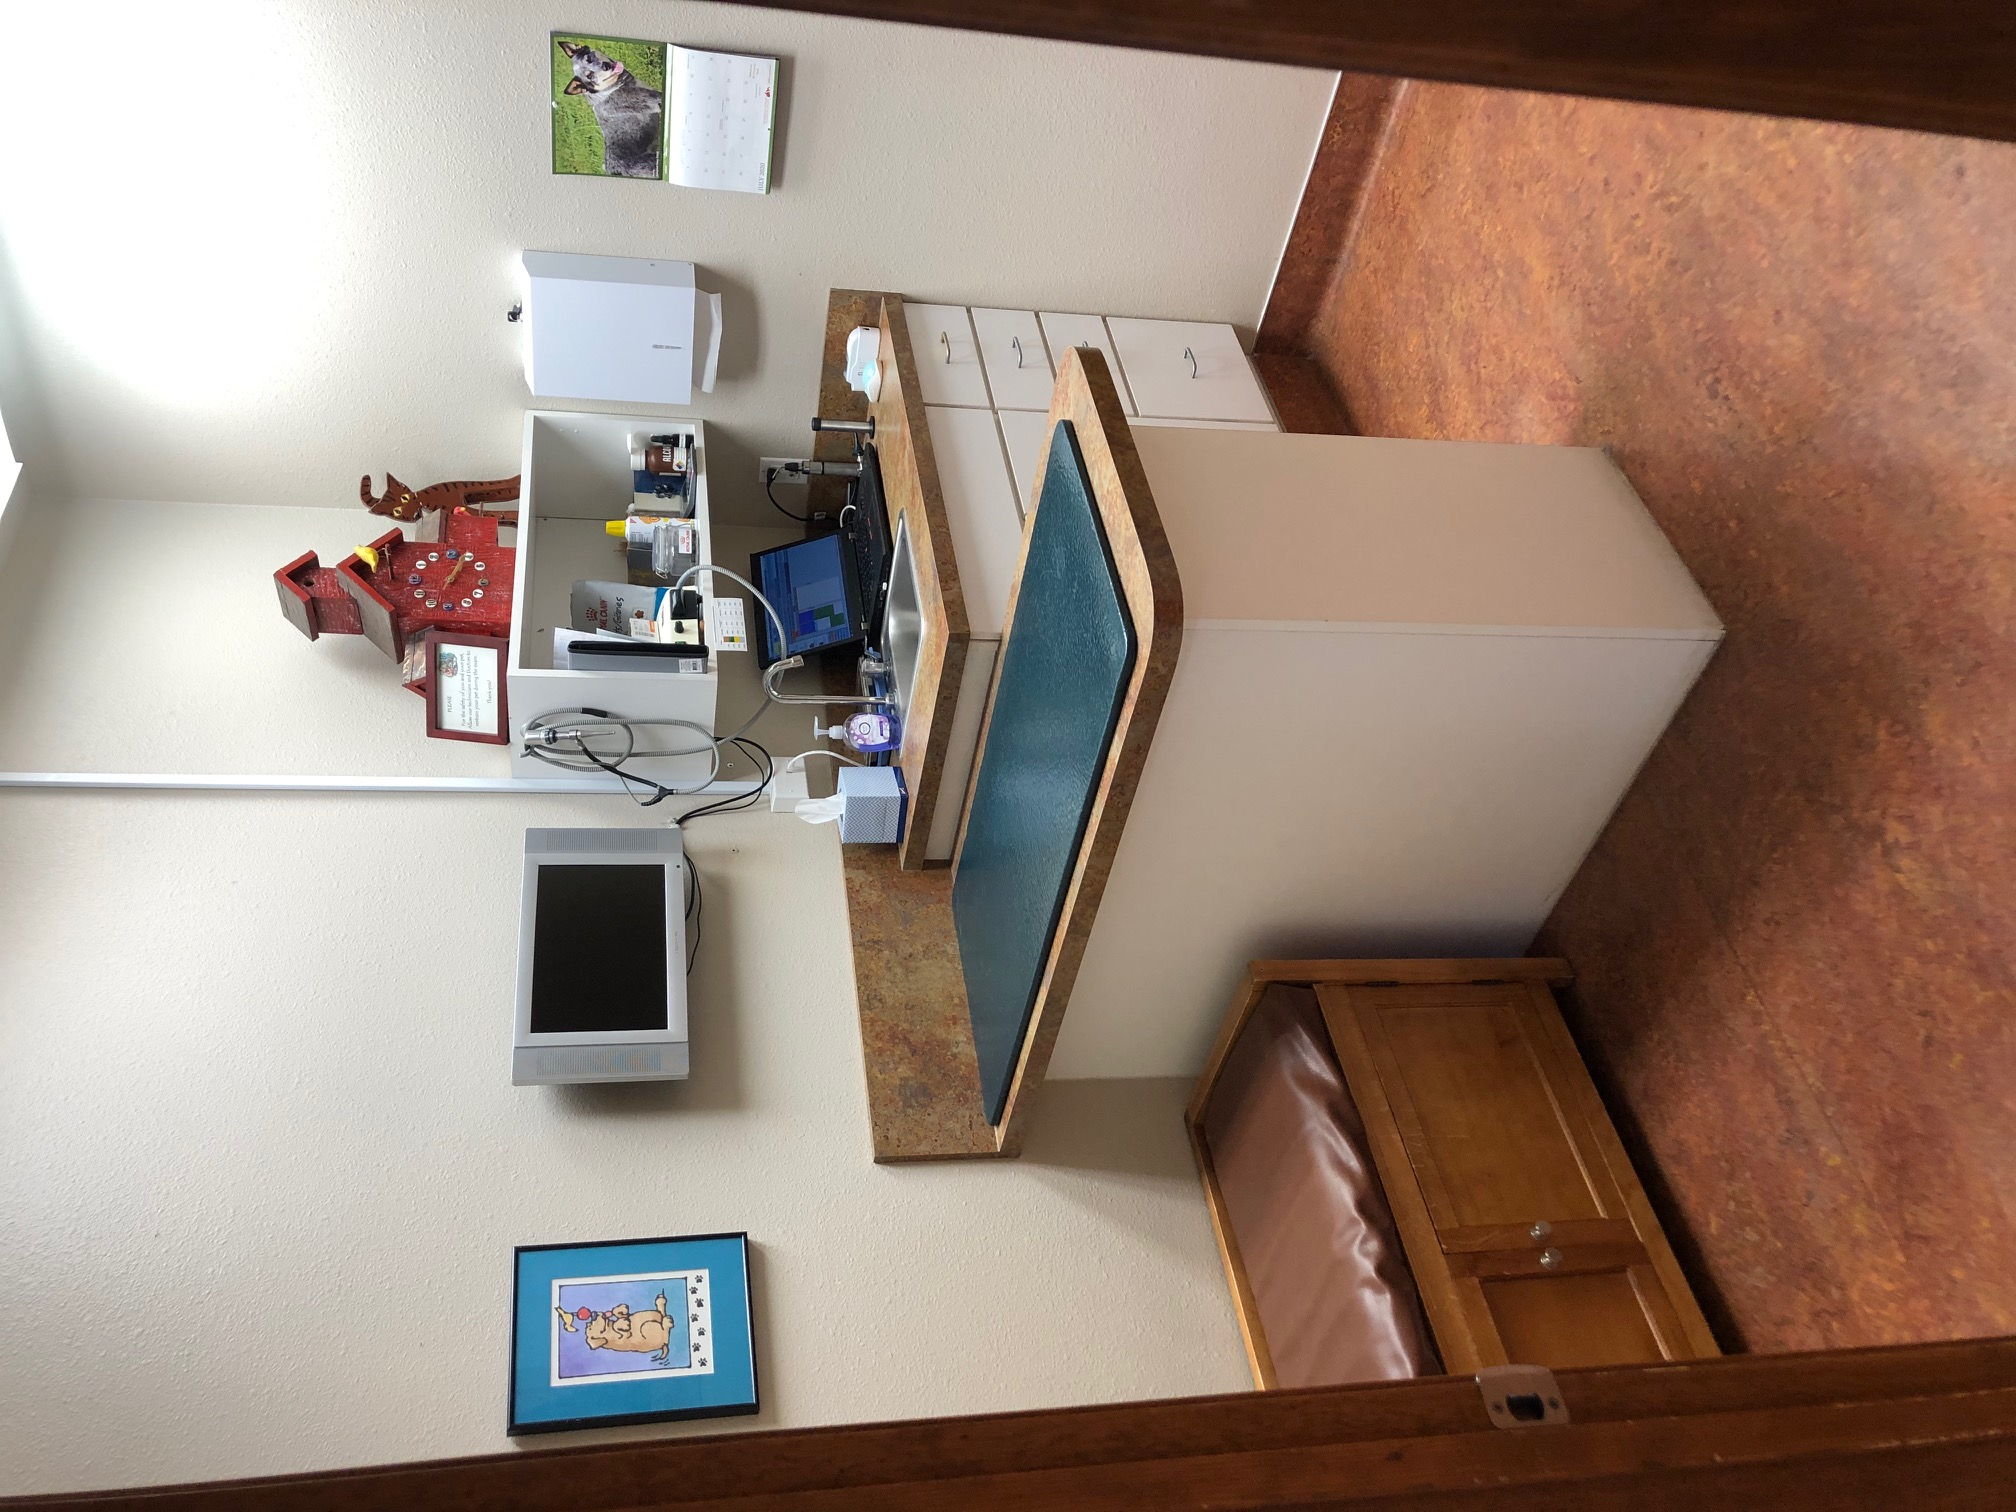 Small dog exam room